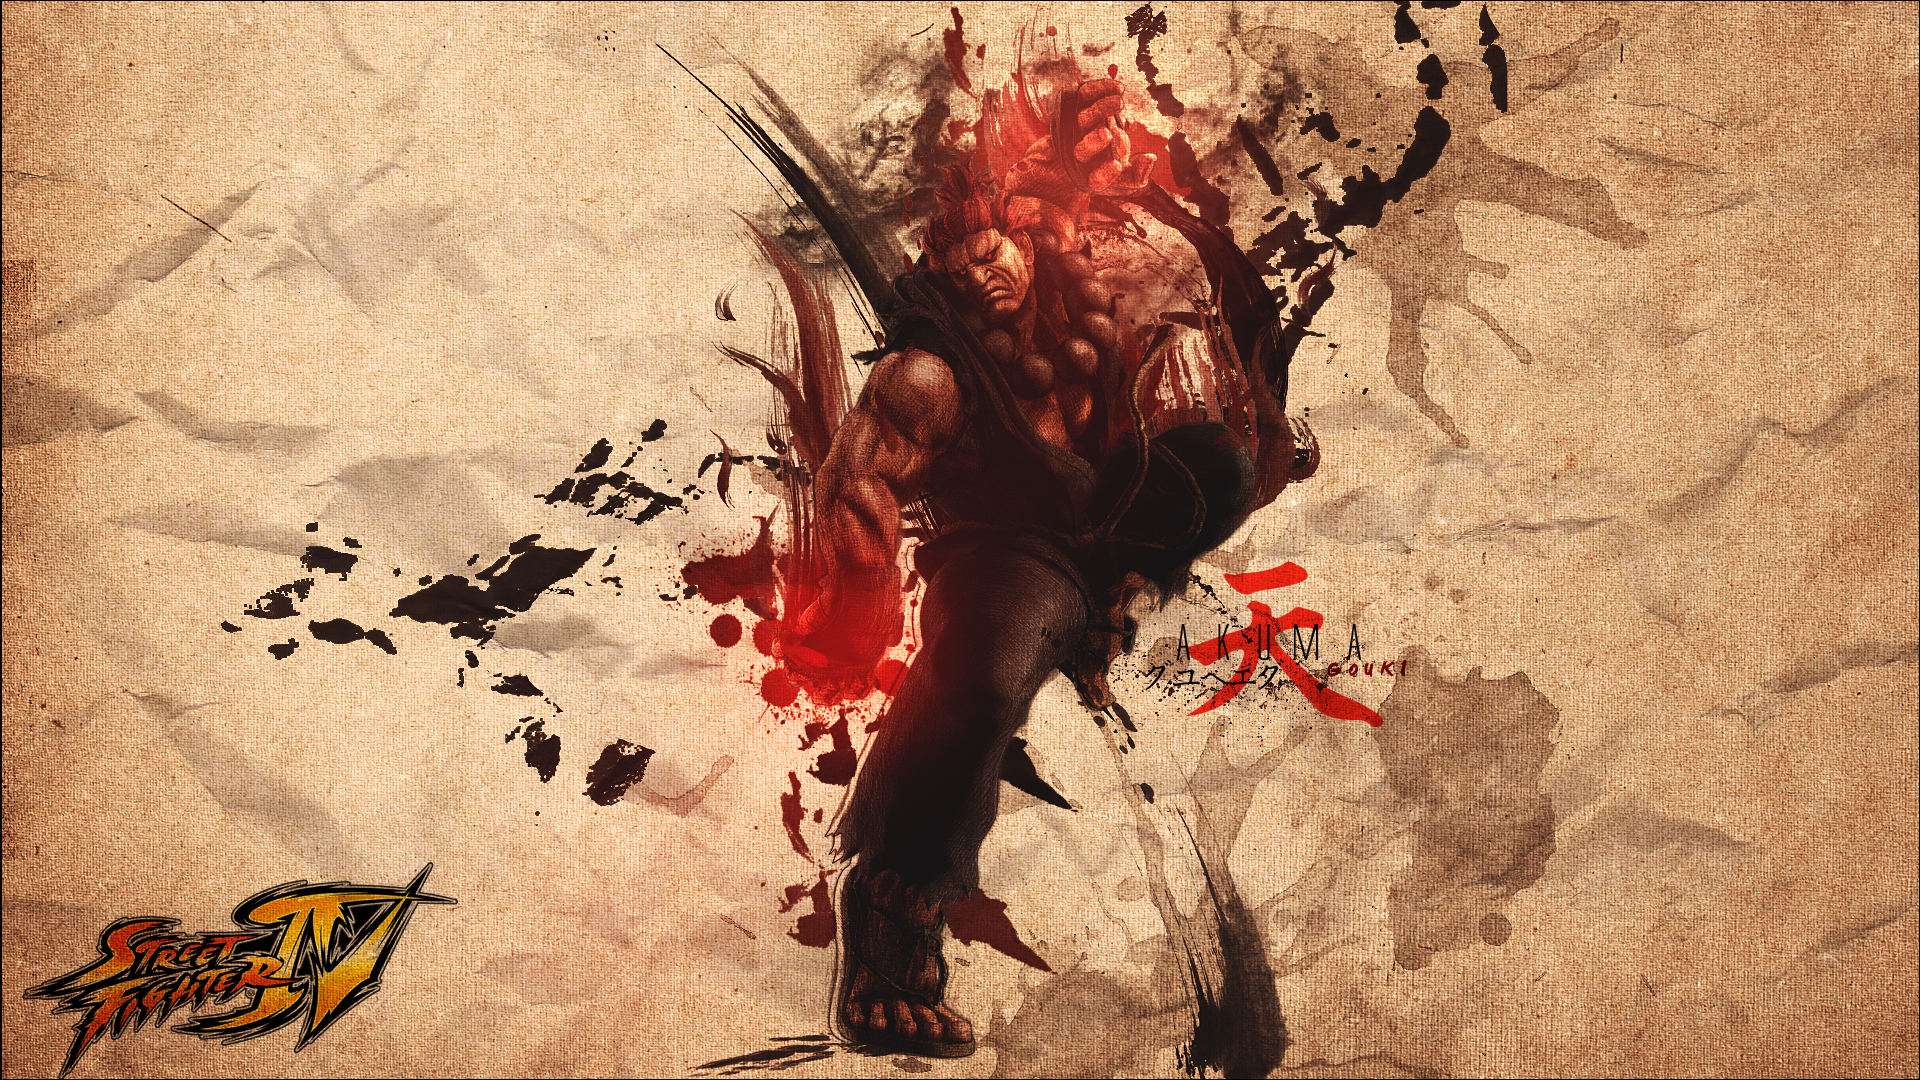 3d Holi Wallpapers Free Download Download Akuma Street Fighter Wallpaper Gallery